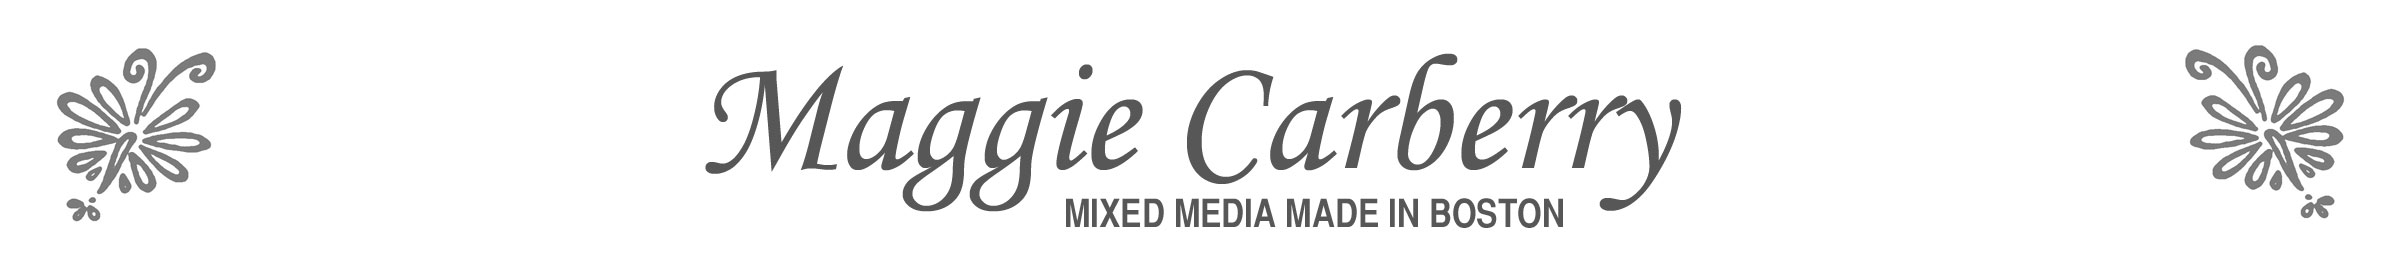 Maggie Carberry Logo